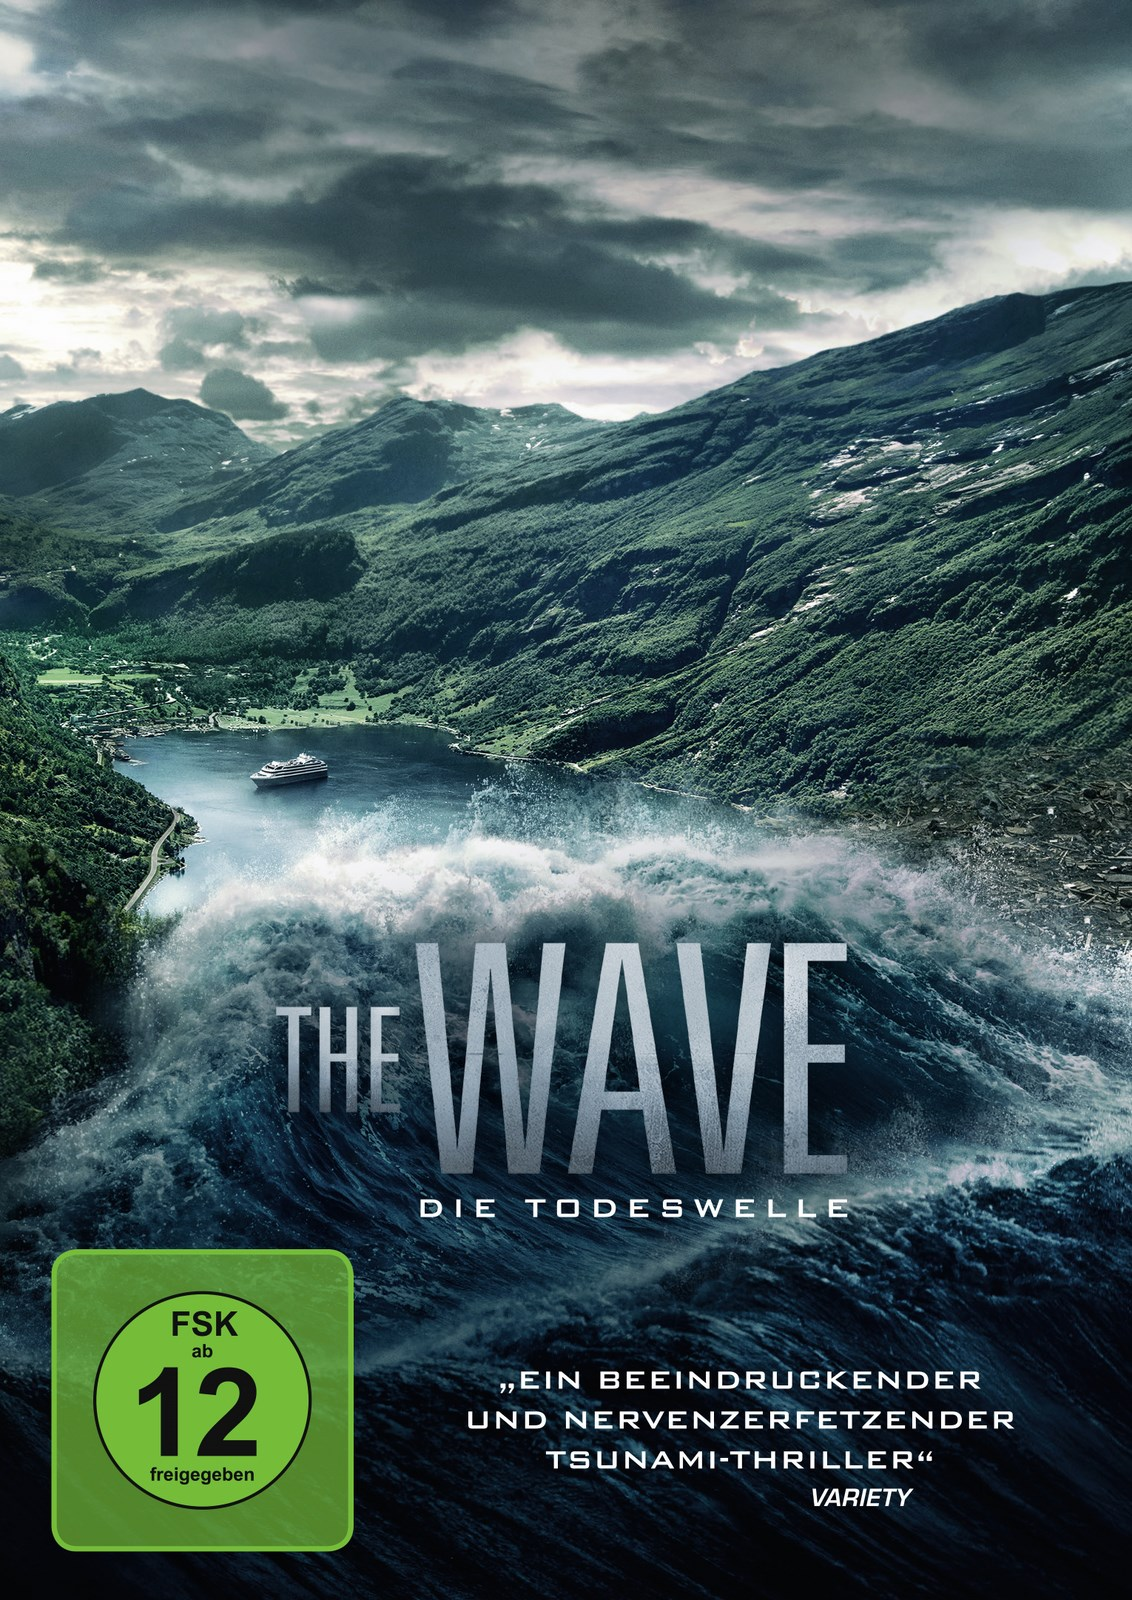 The Wave Die Todeswelle